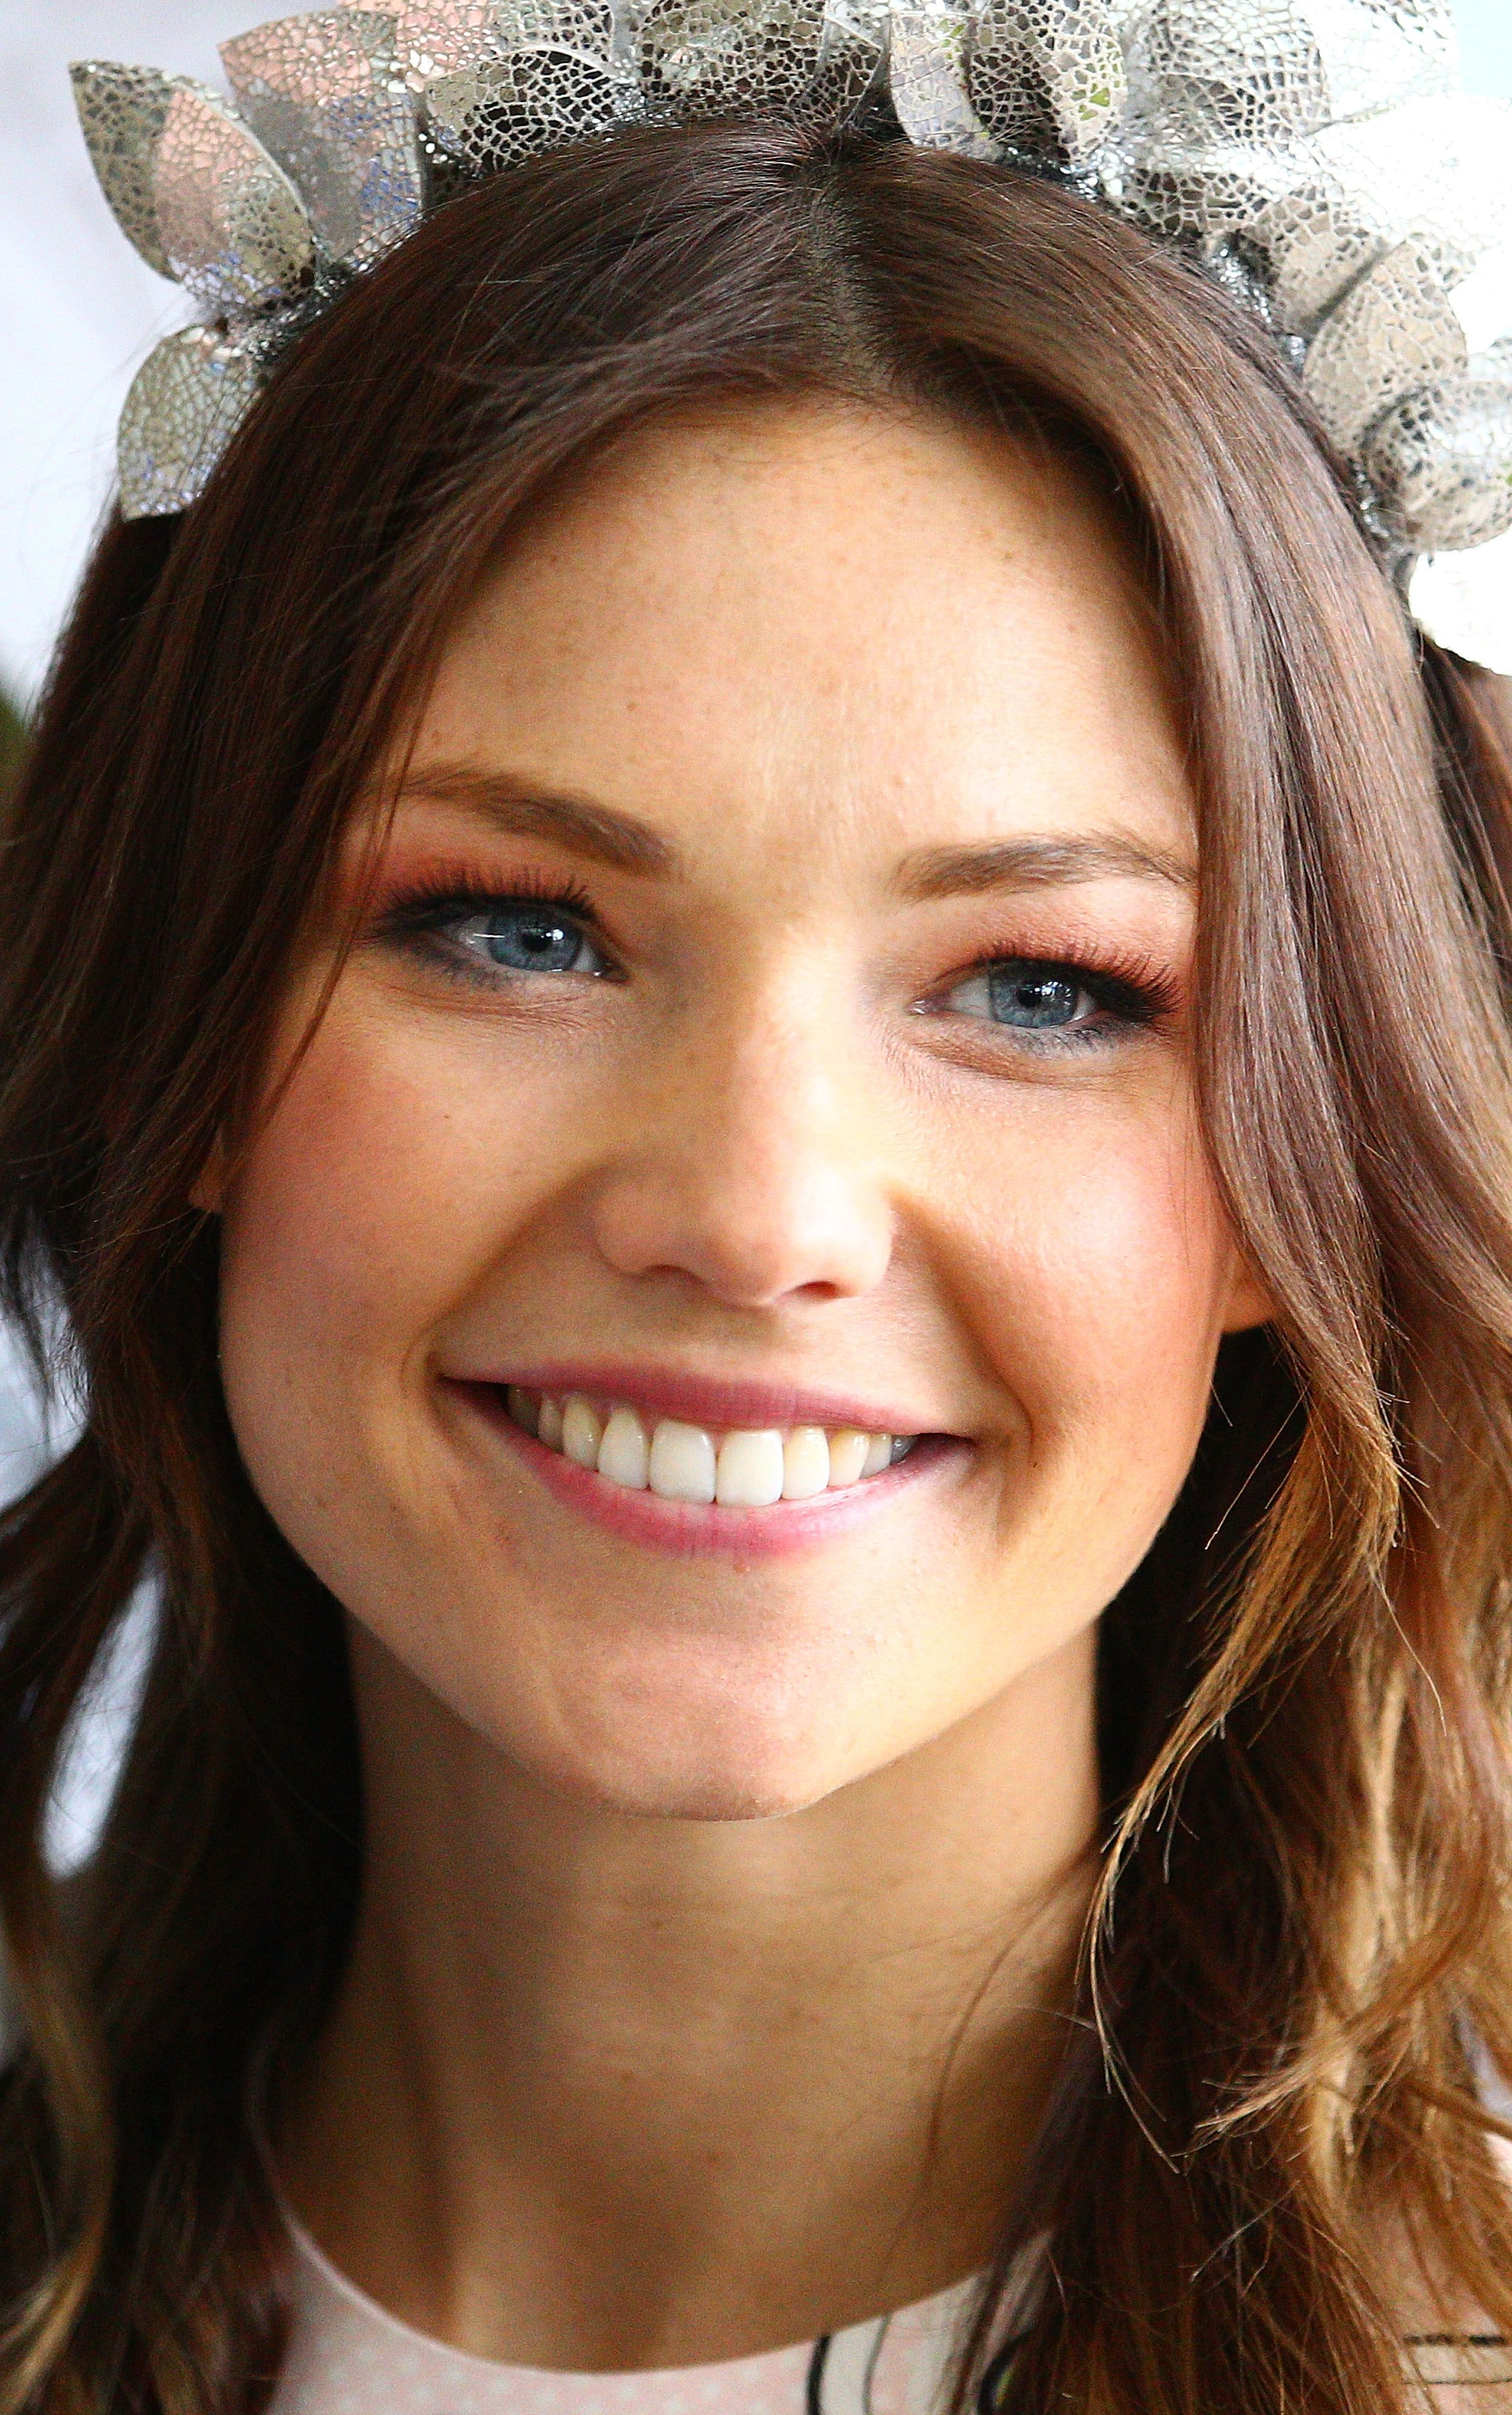 Sam Frost Sticks to Her Signature Beauty Look (With images